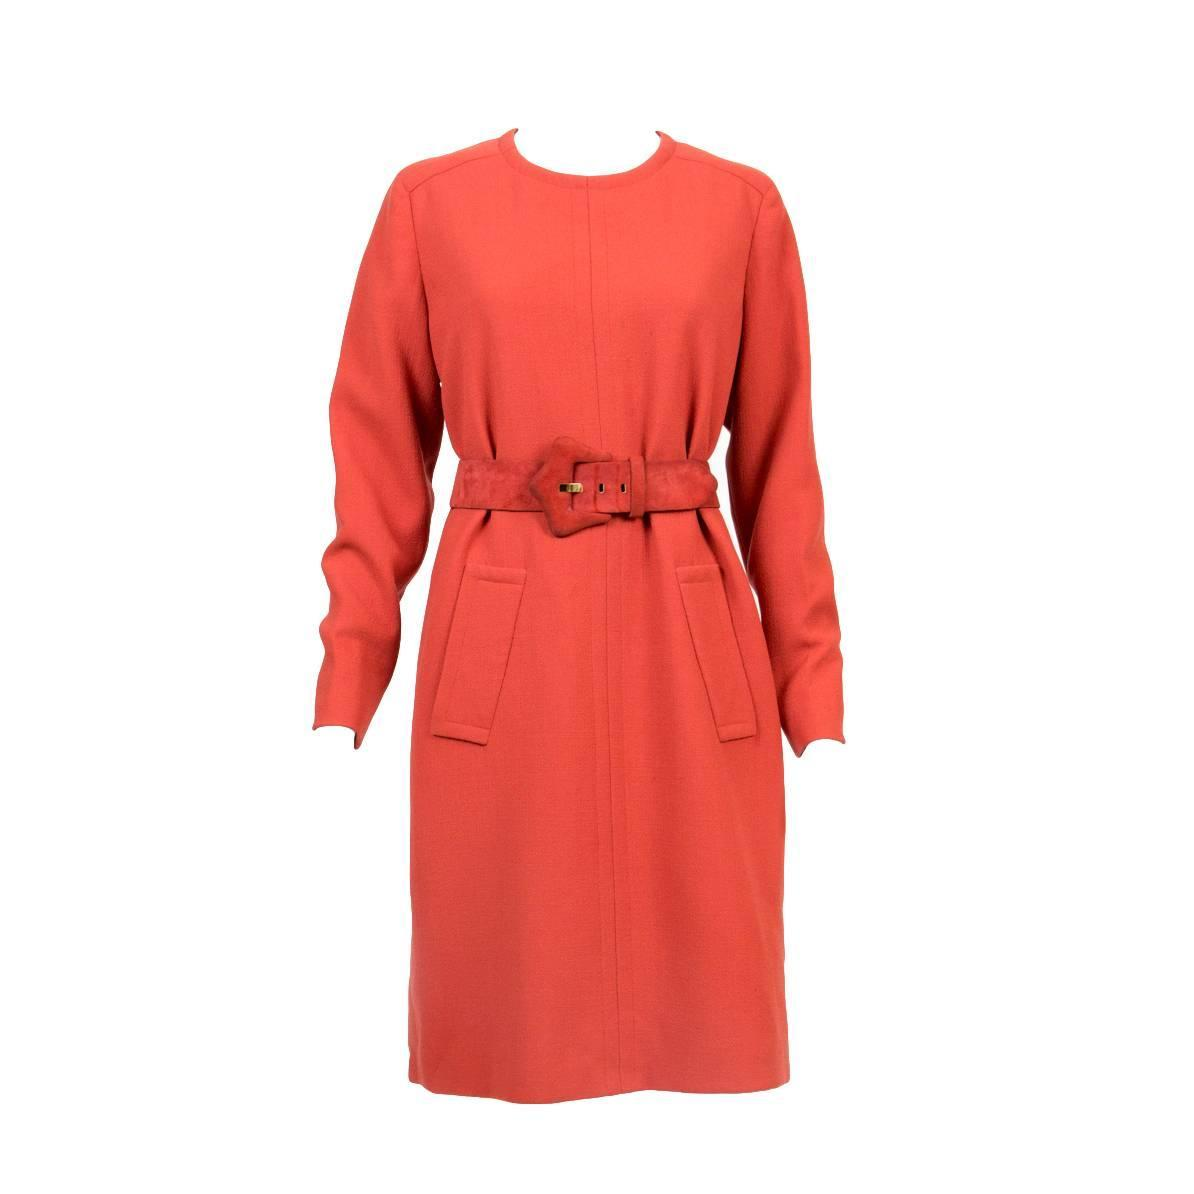 1960s givenchy haute couture numbered rust dress for sale for 1960 s haute couture